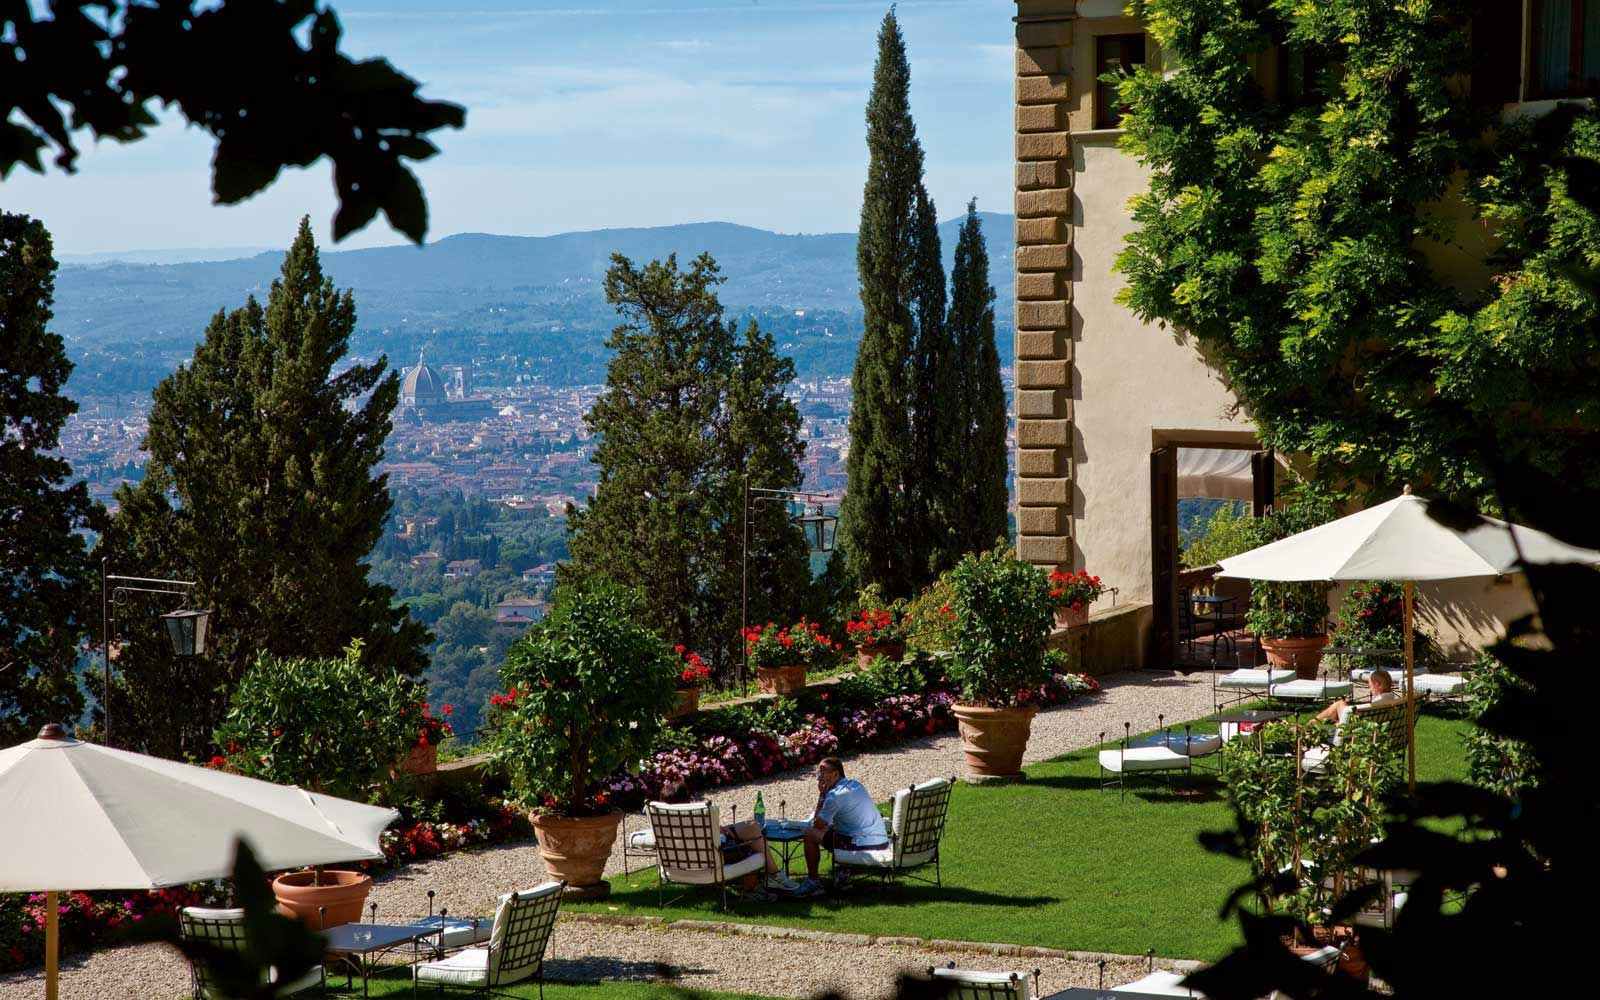 View from the Belmond Villa San Michele